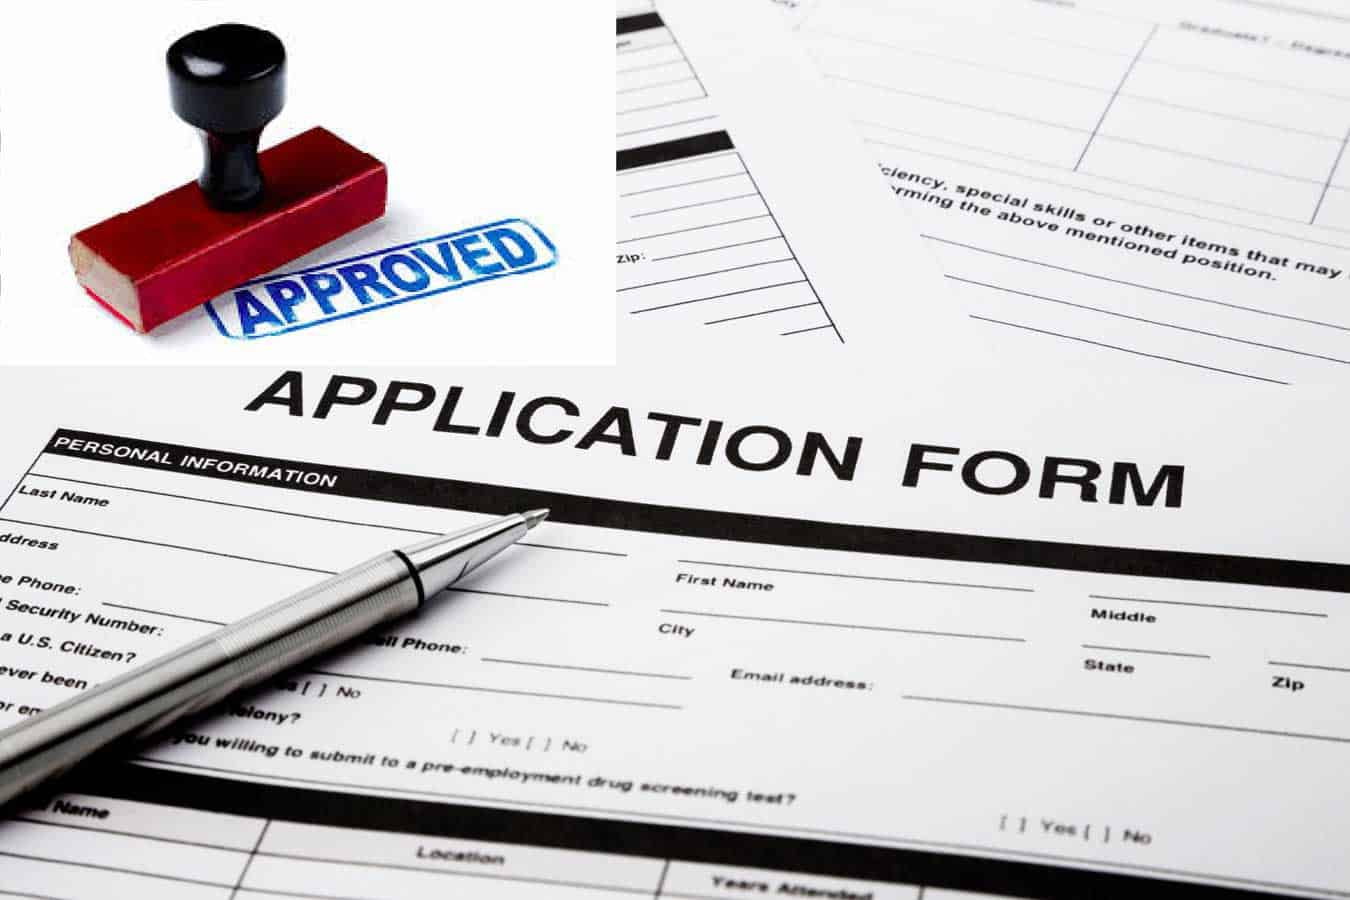 learning licence online application form